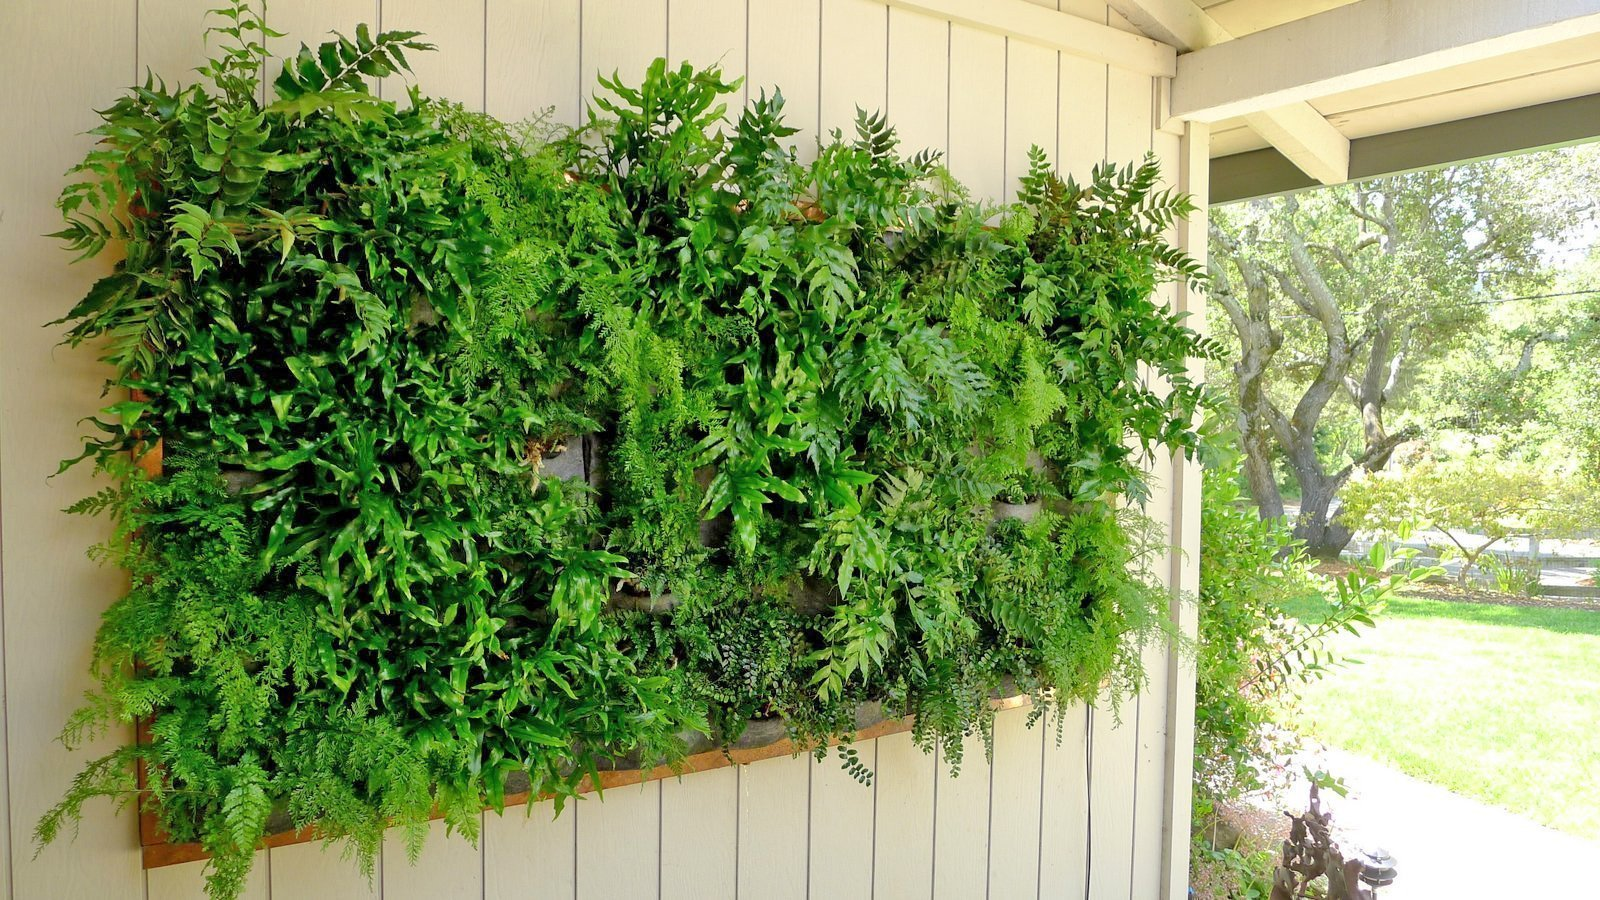 Chris Bribach, Plants On Walls. Florafelt Vertical Garden.